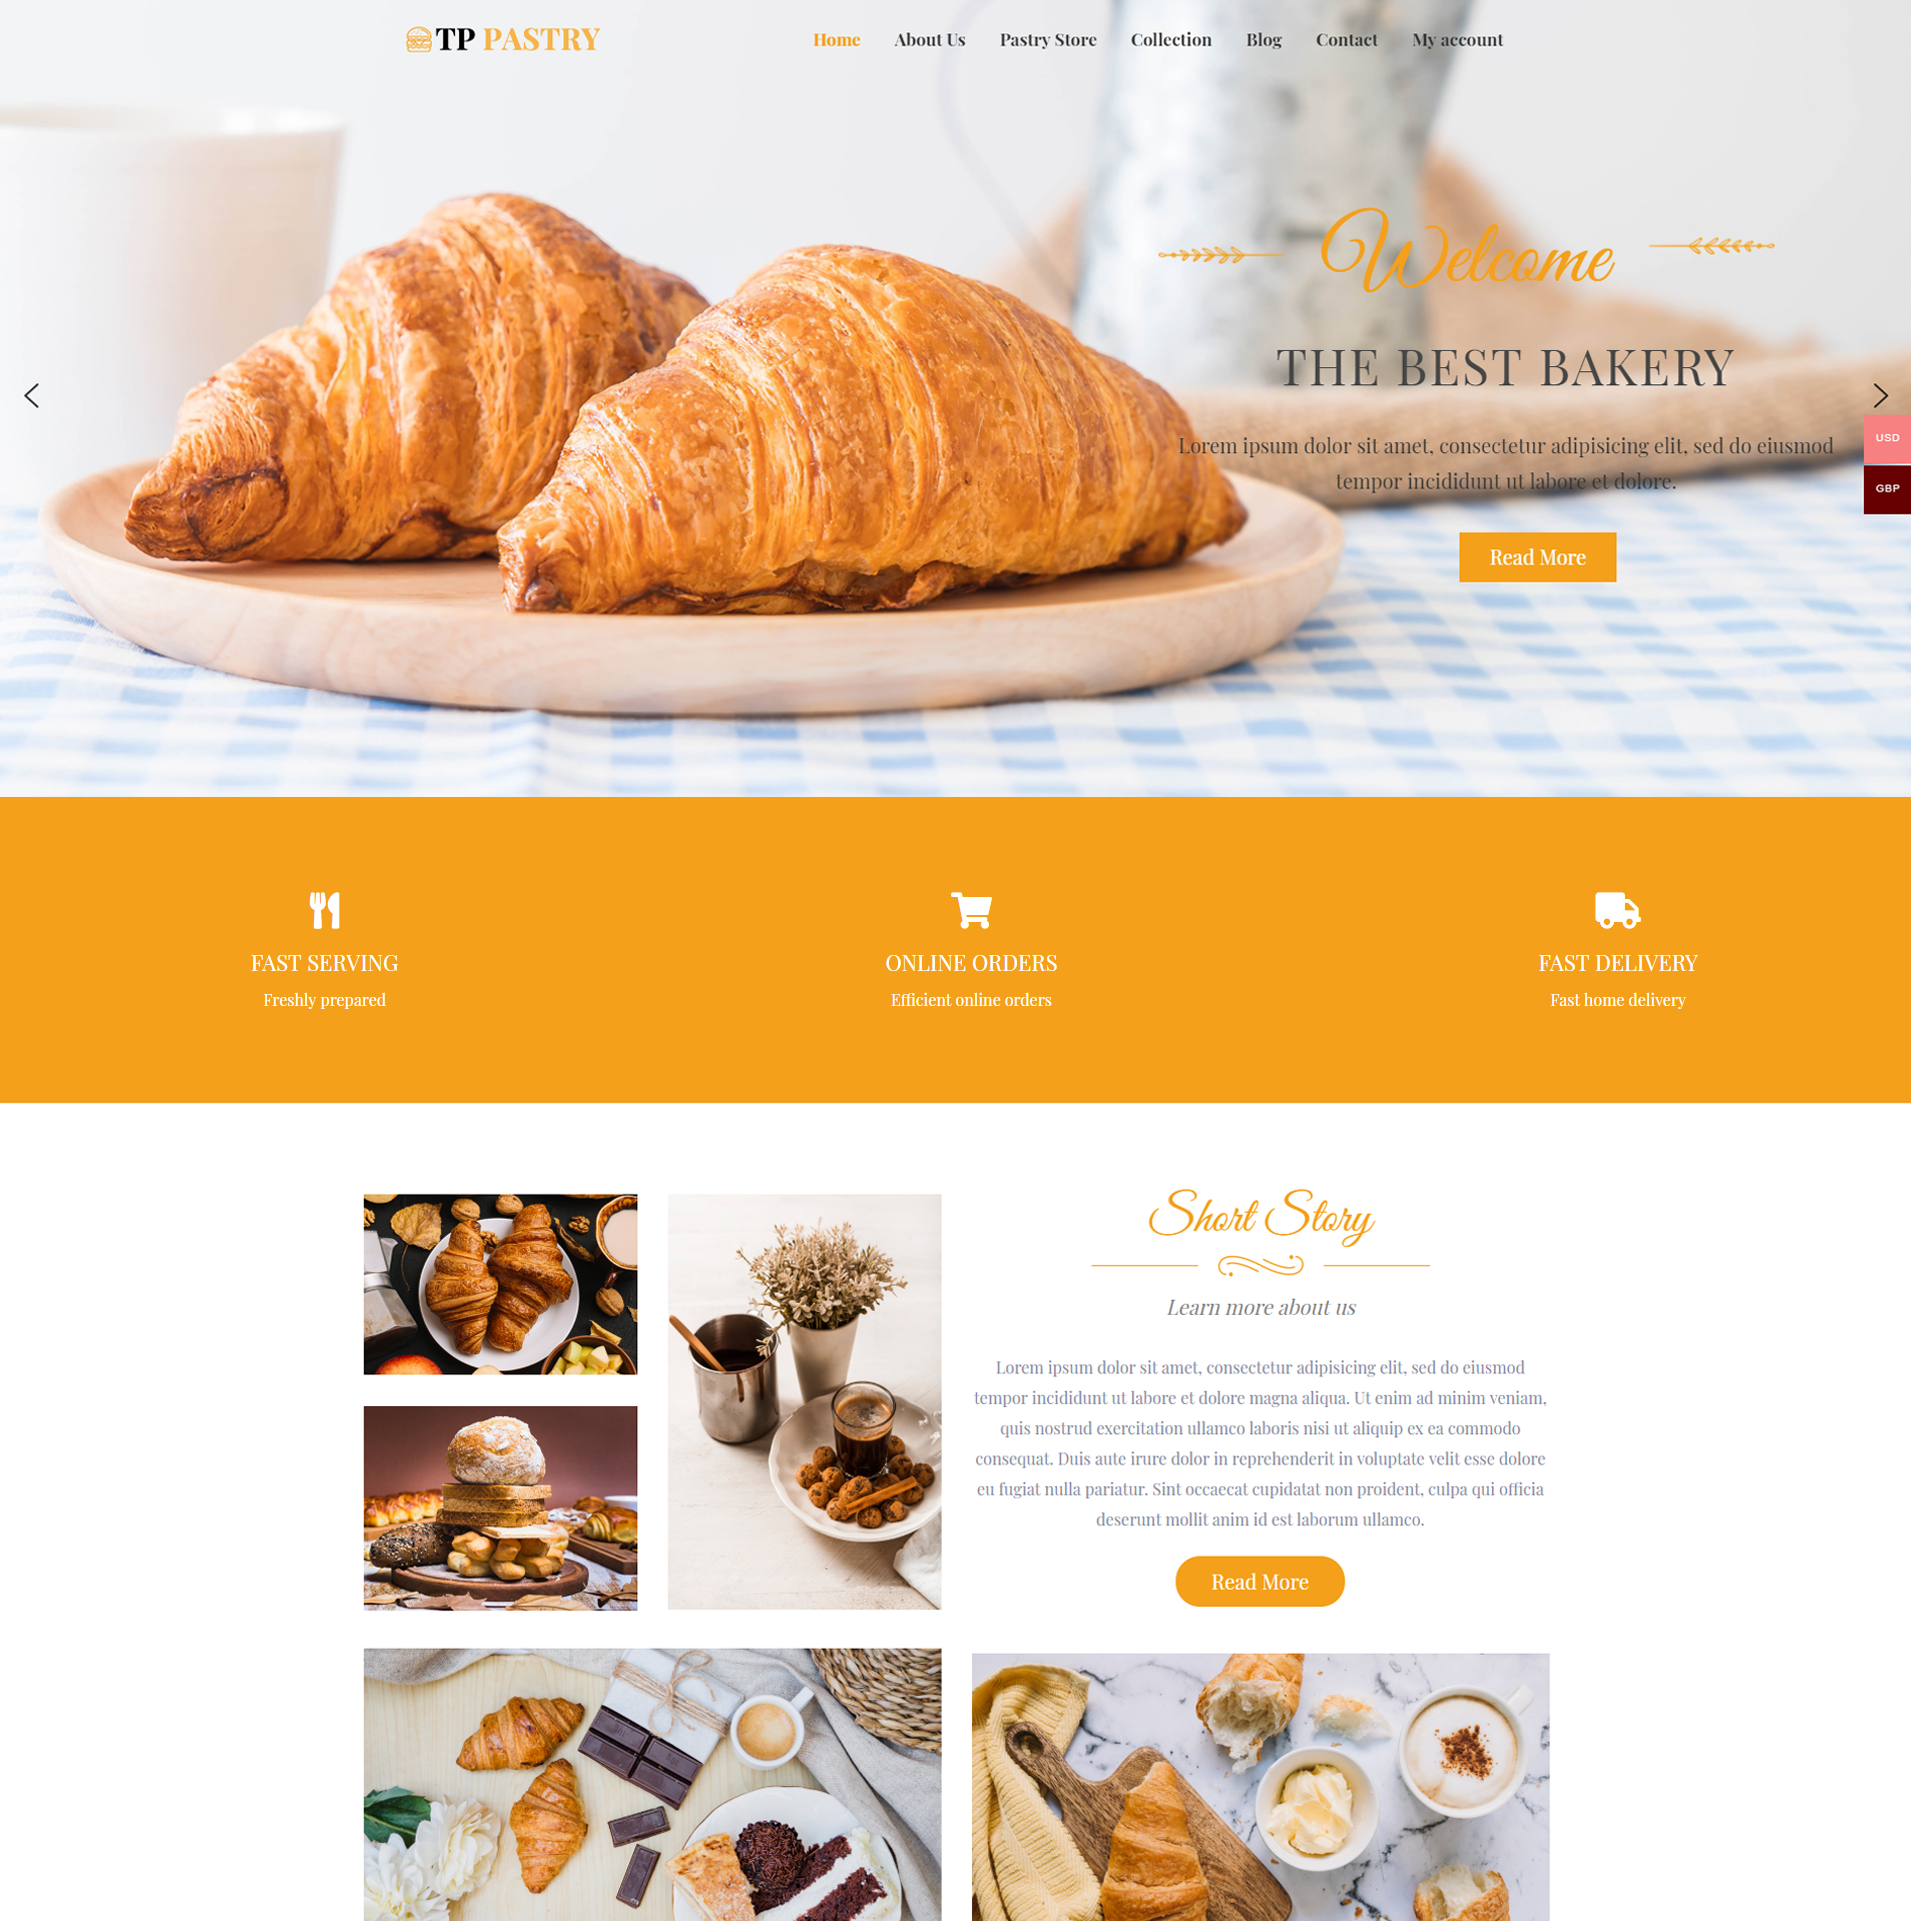 tpg-pastry-free-wordpress-theme-shot